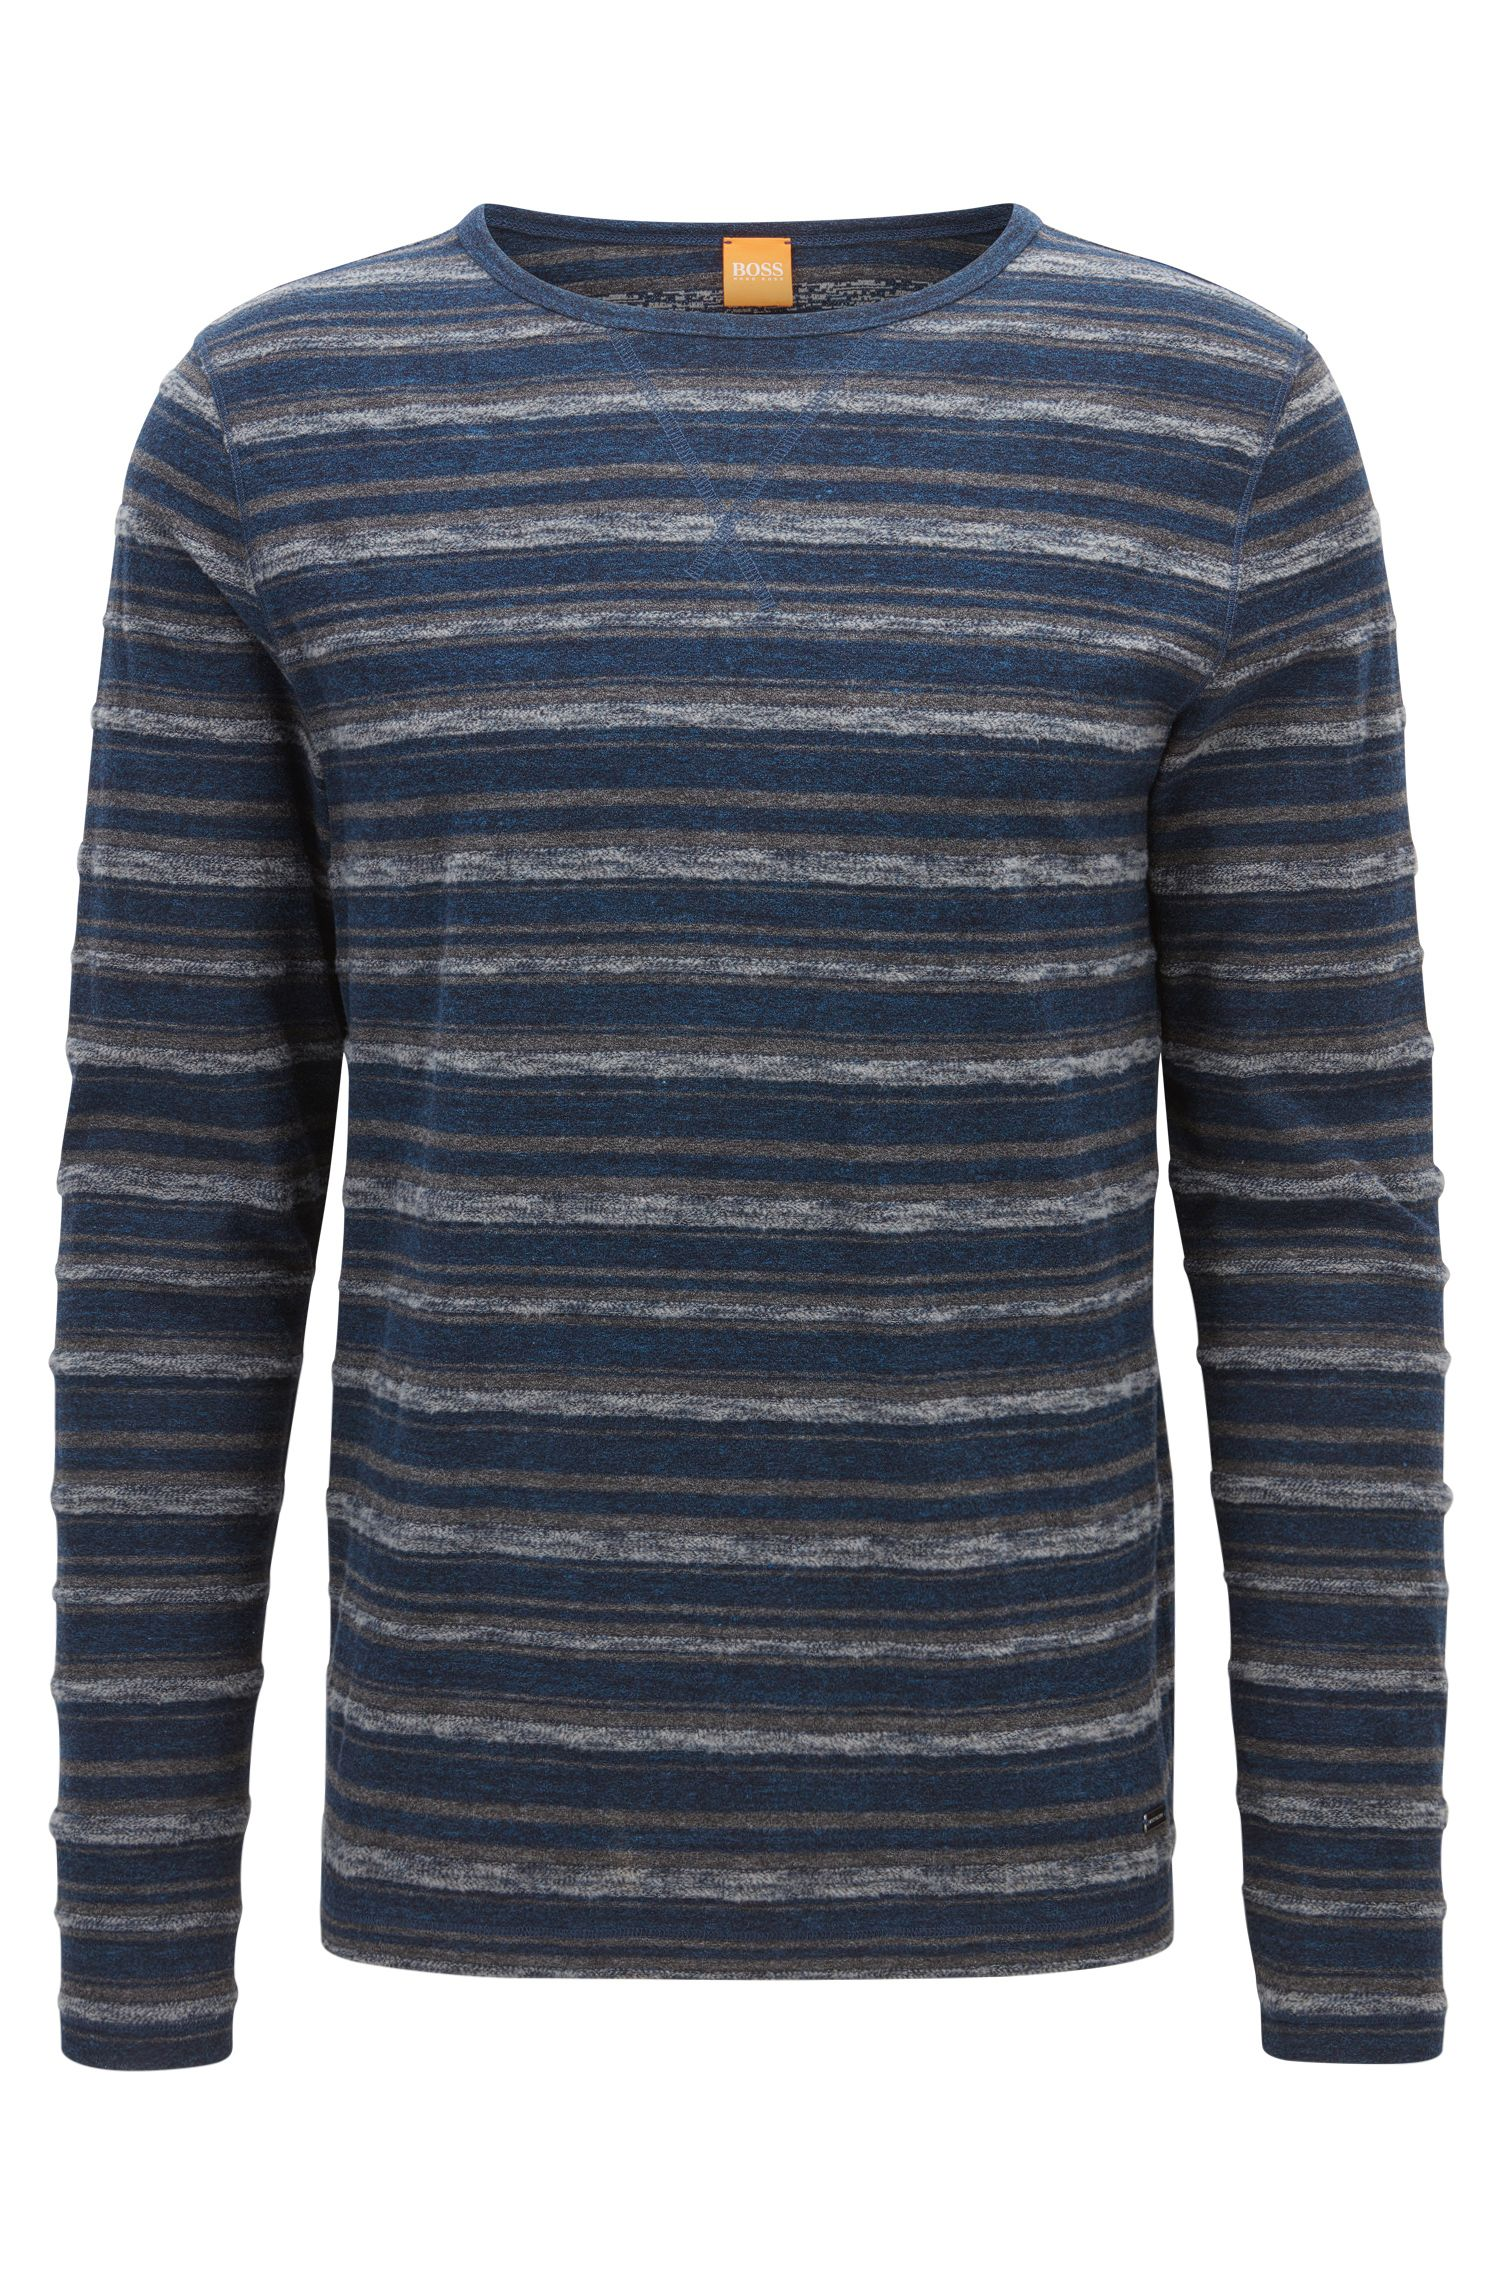 'Twinkle' | Striped Stretch Cotton T-Shirt